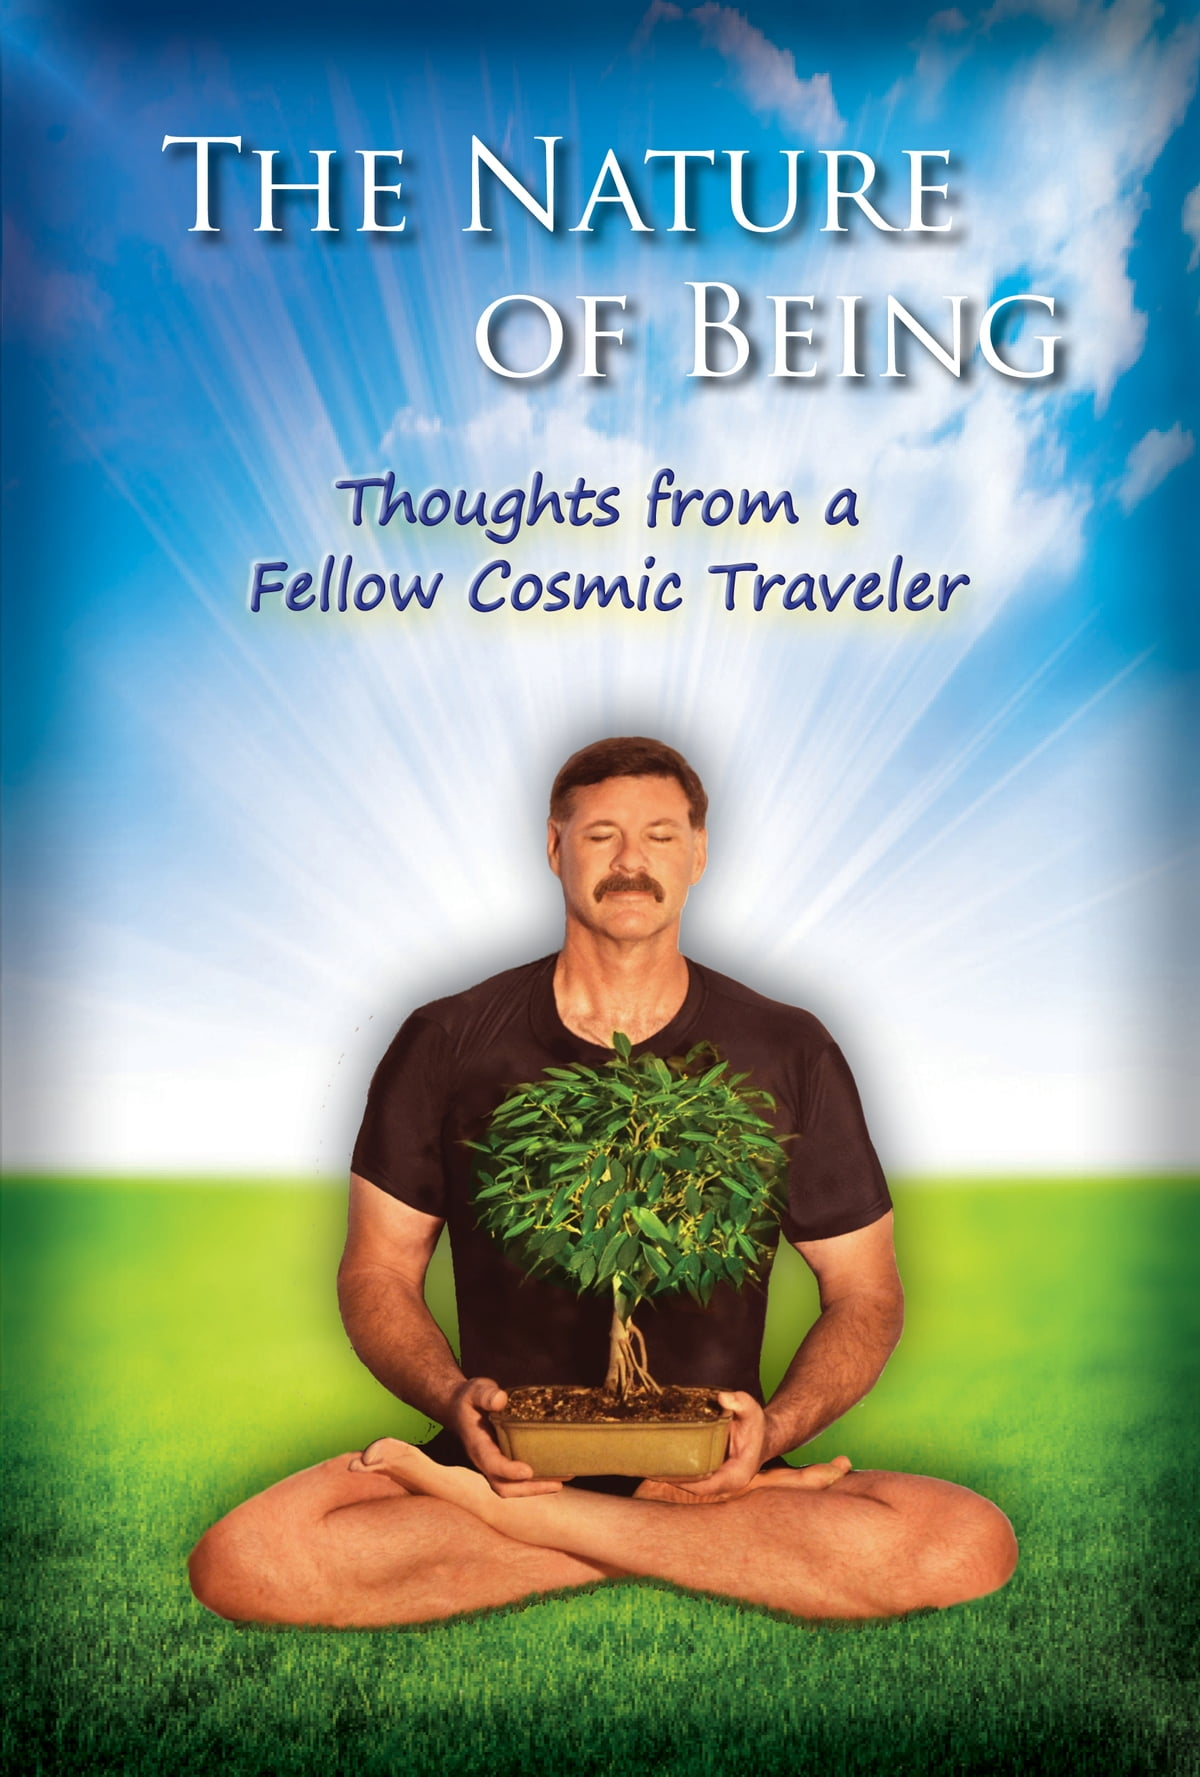 The Nature Of Being: Thoughts From A Fellow Cosmic Traveler Ebook By Fellow  Cosmic Traveler  9781310260582  Kobo